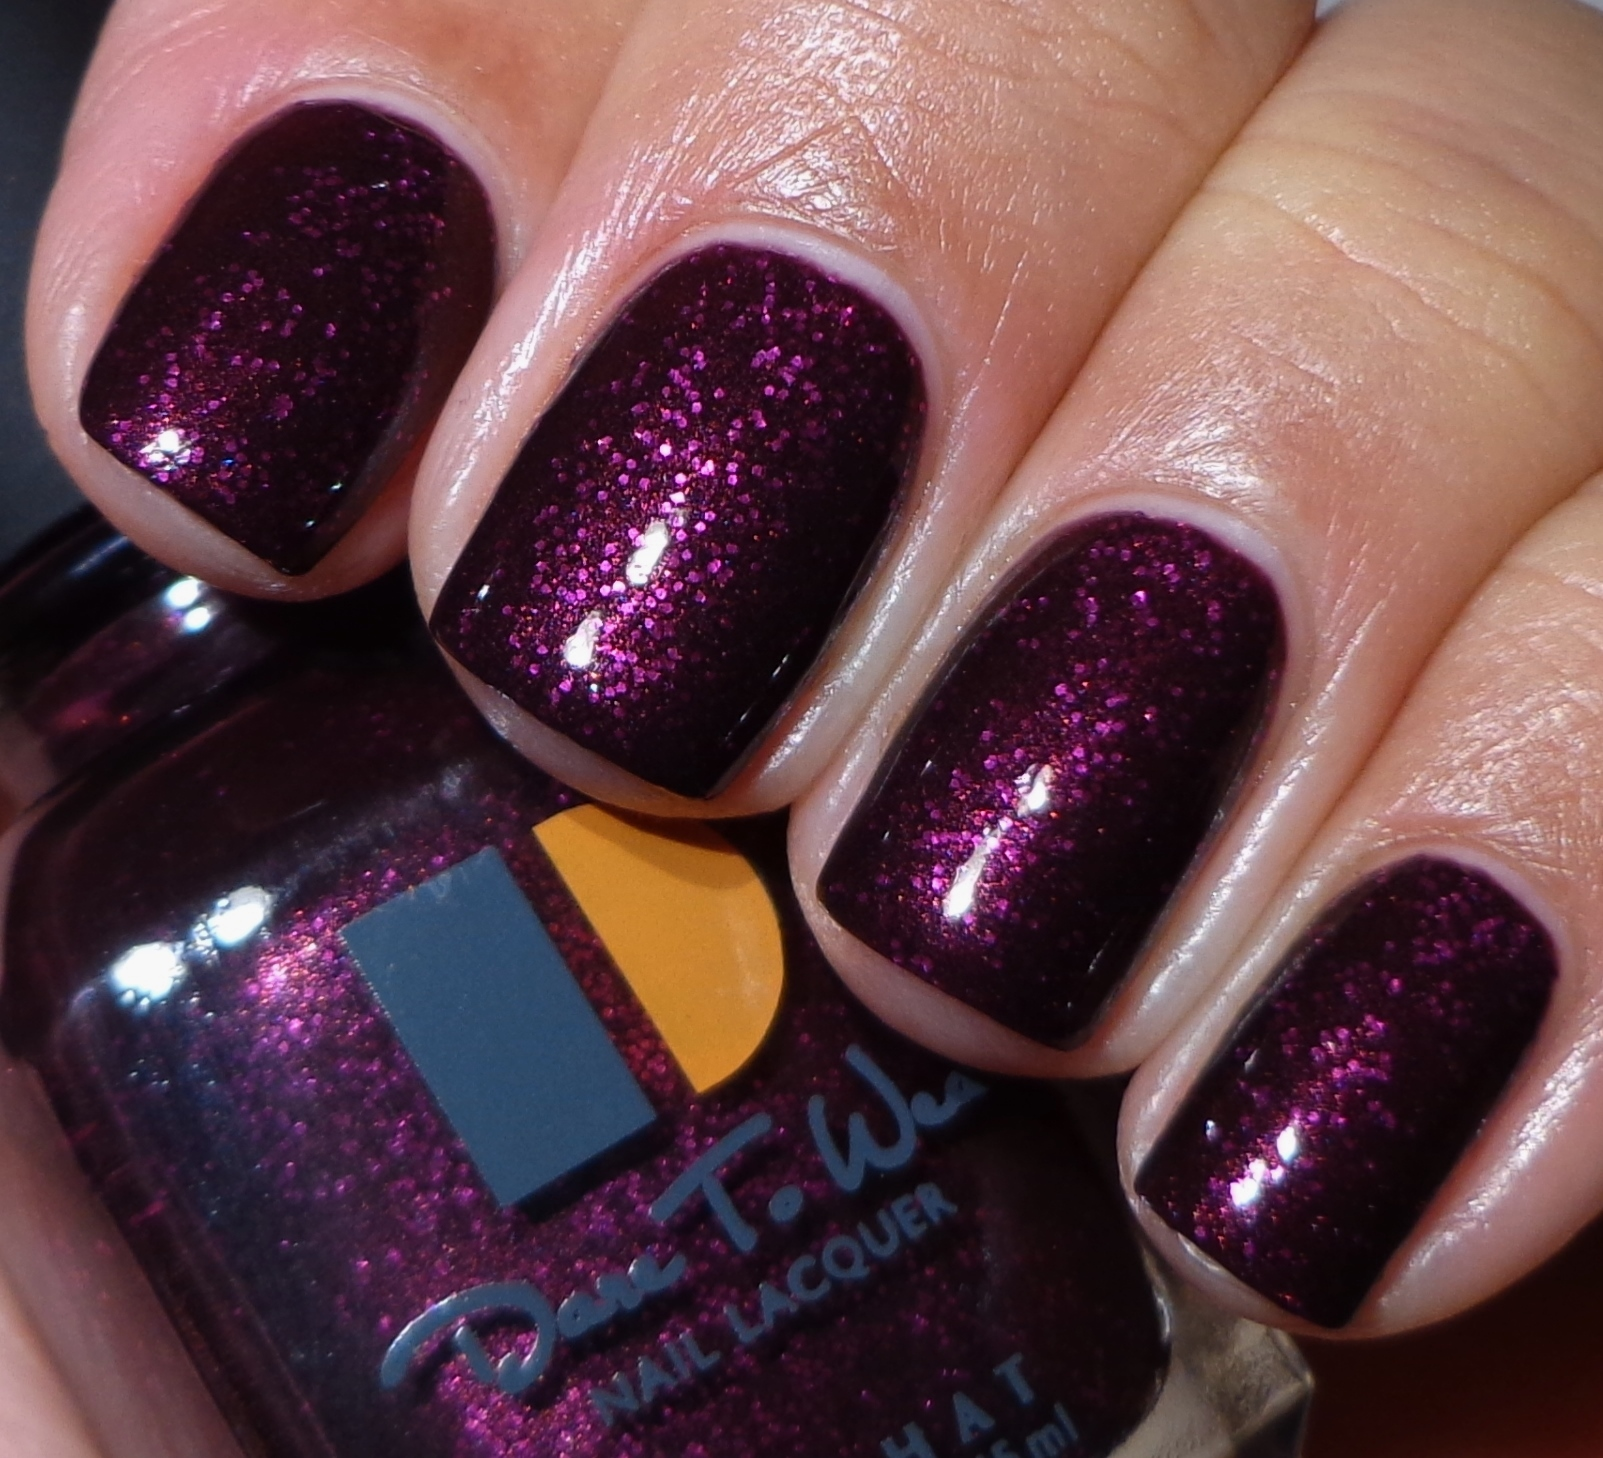 Dare To Wear Night At The Cinema 1 - Of Life and Lacquer